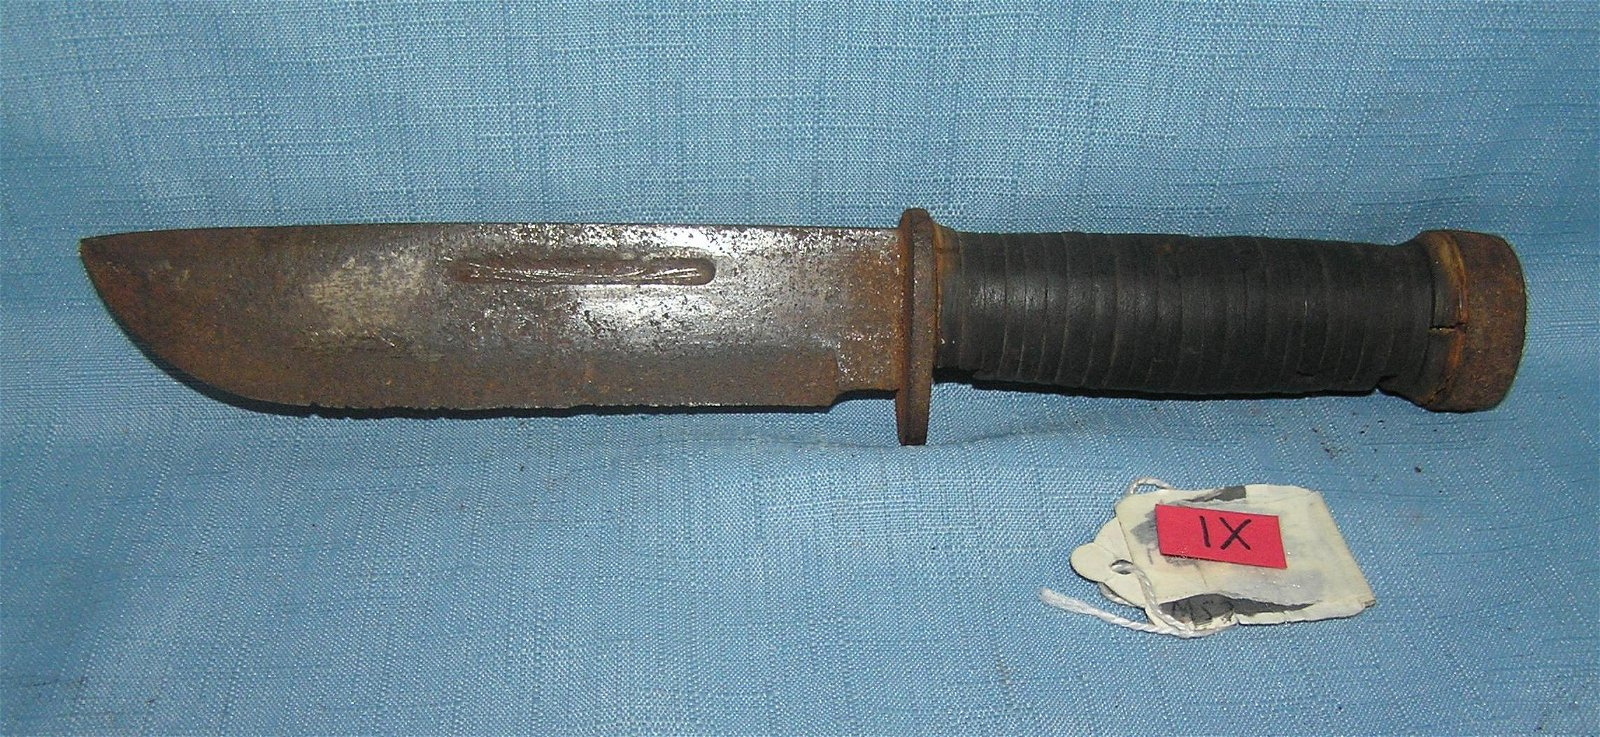 WWII military fighting knife